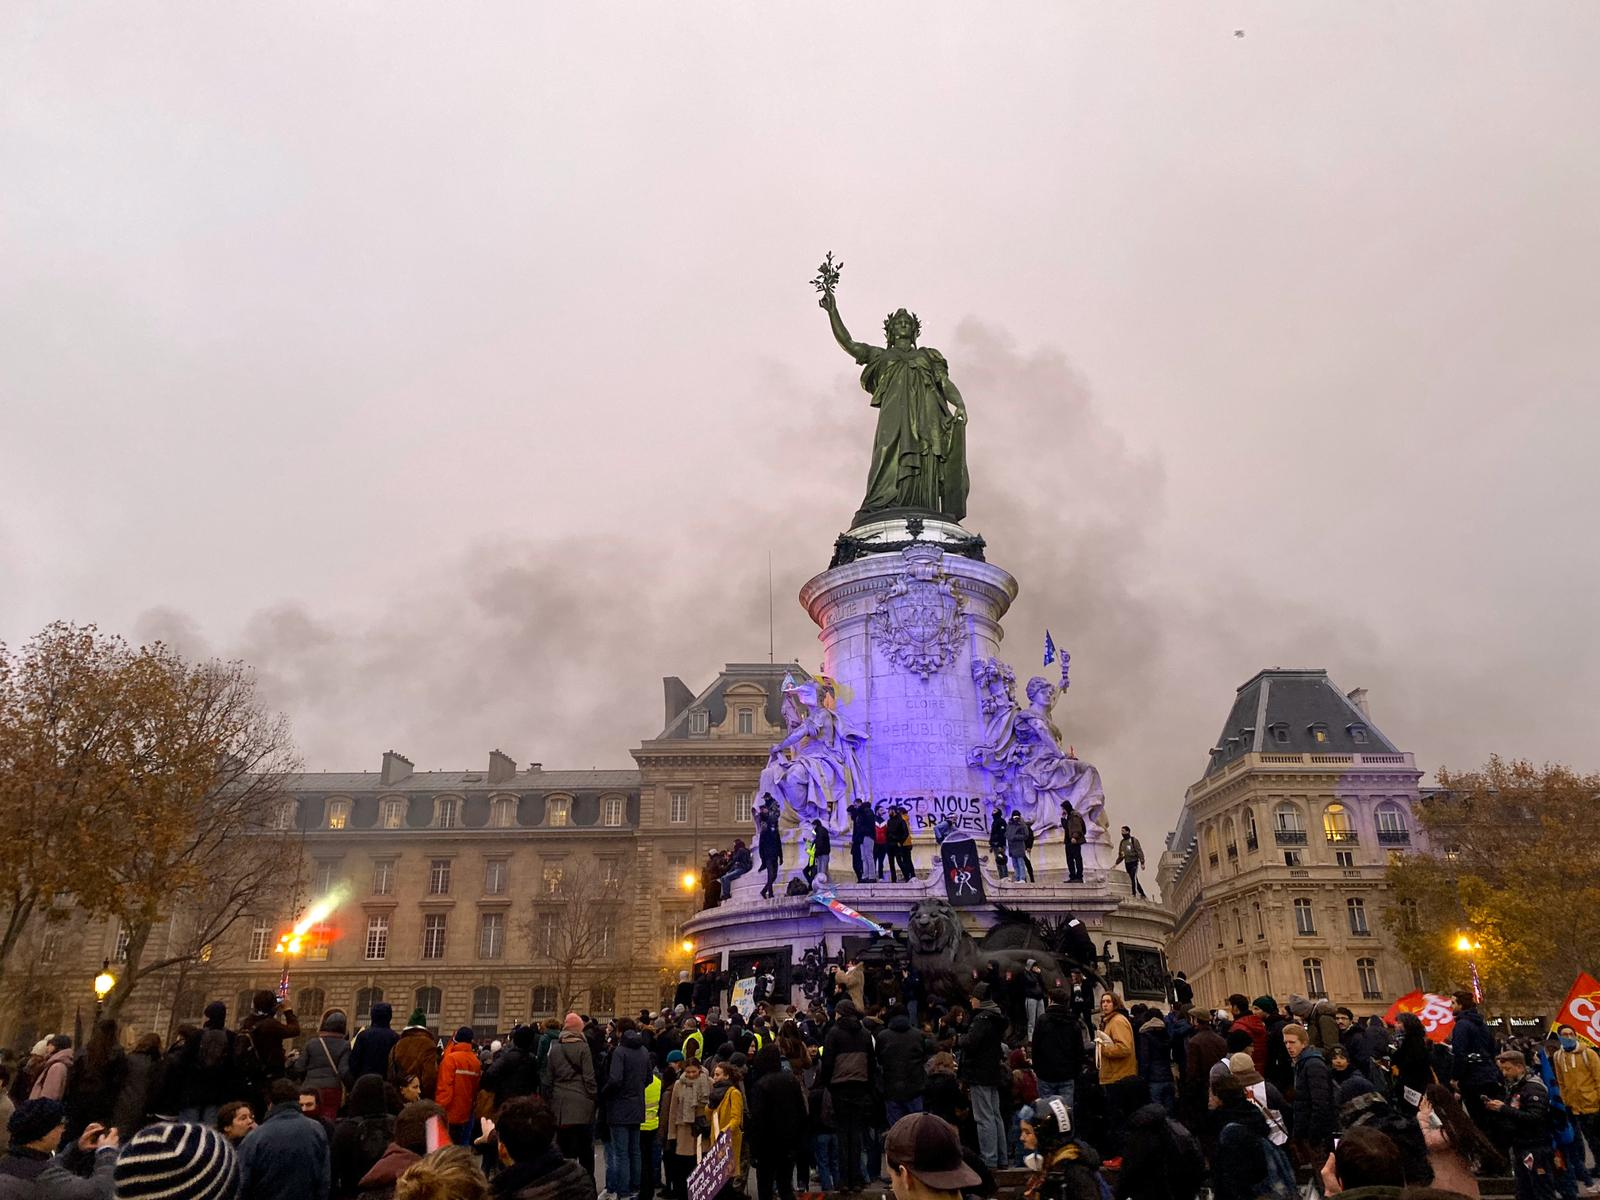 Protestors gather around a statue at Place de la République which represents Marianne, a fictional woman who represents the French Republic since the revolution.